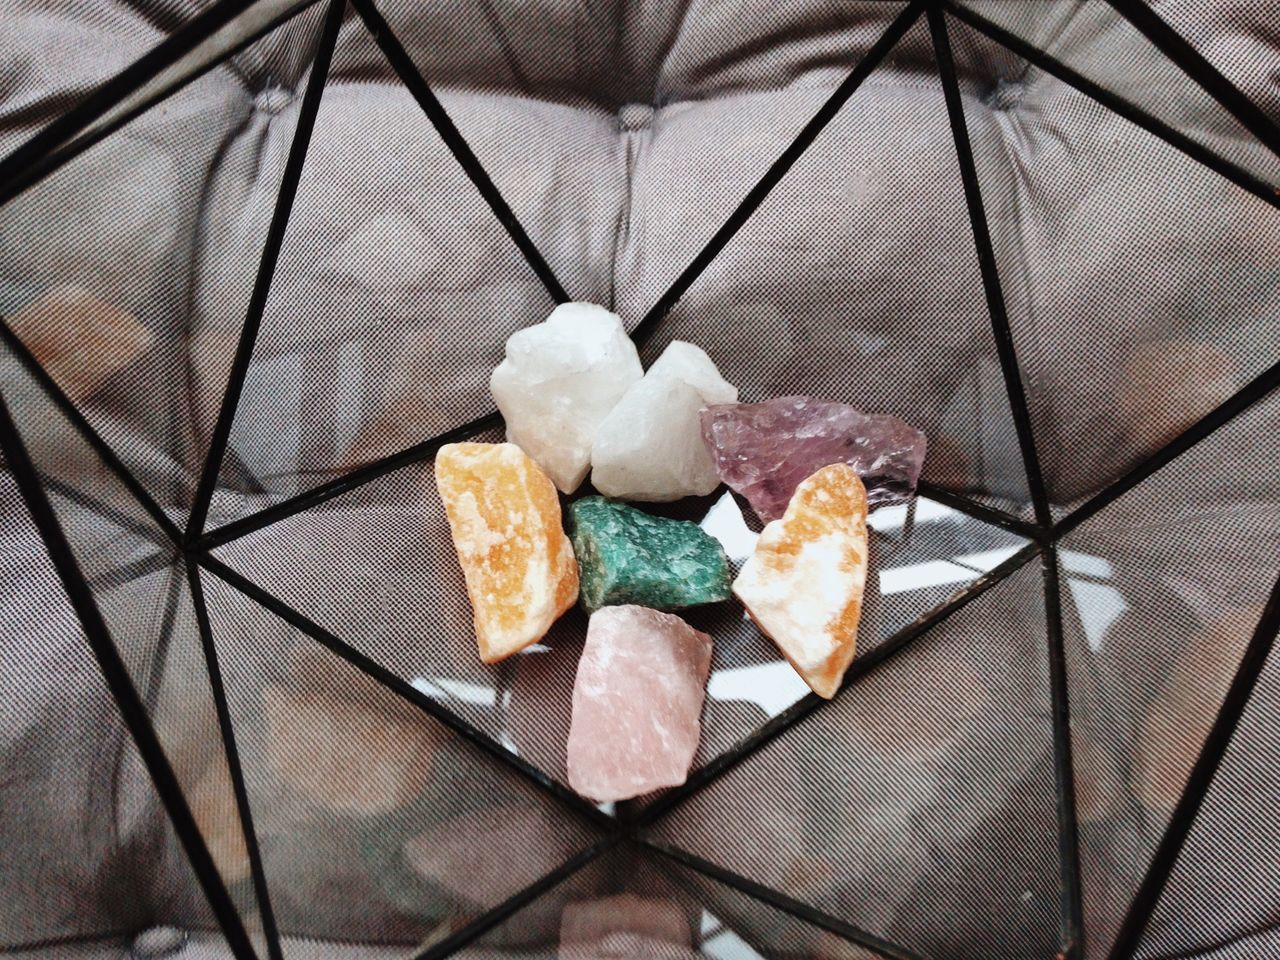 Colorful stones Indoors  High Angle View No People Close-up Stones Stone Material Colorful Abstract Design Decor Decoration Copy Space